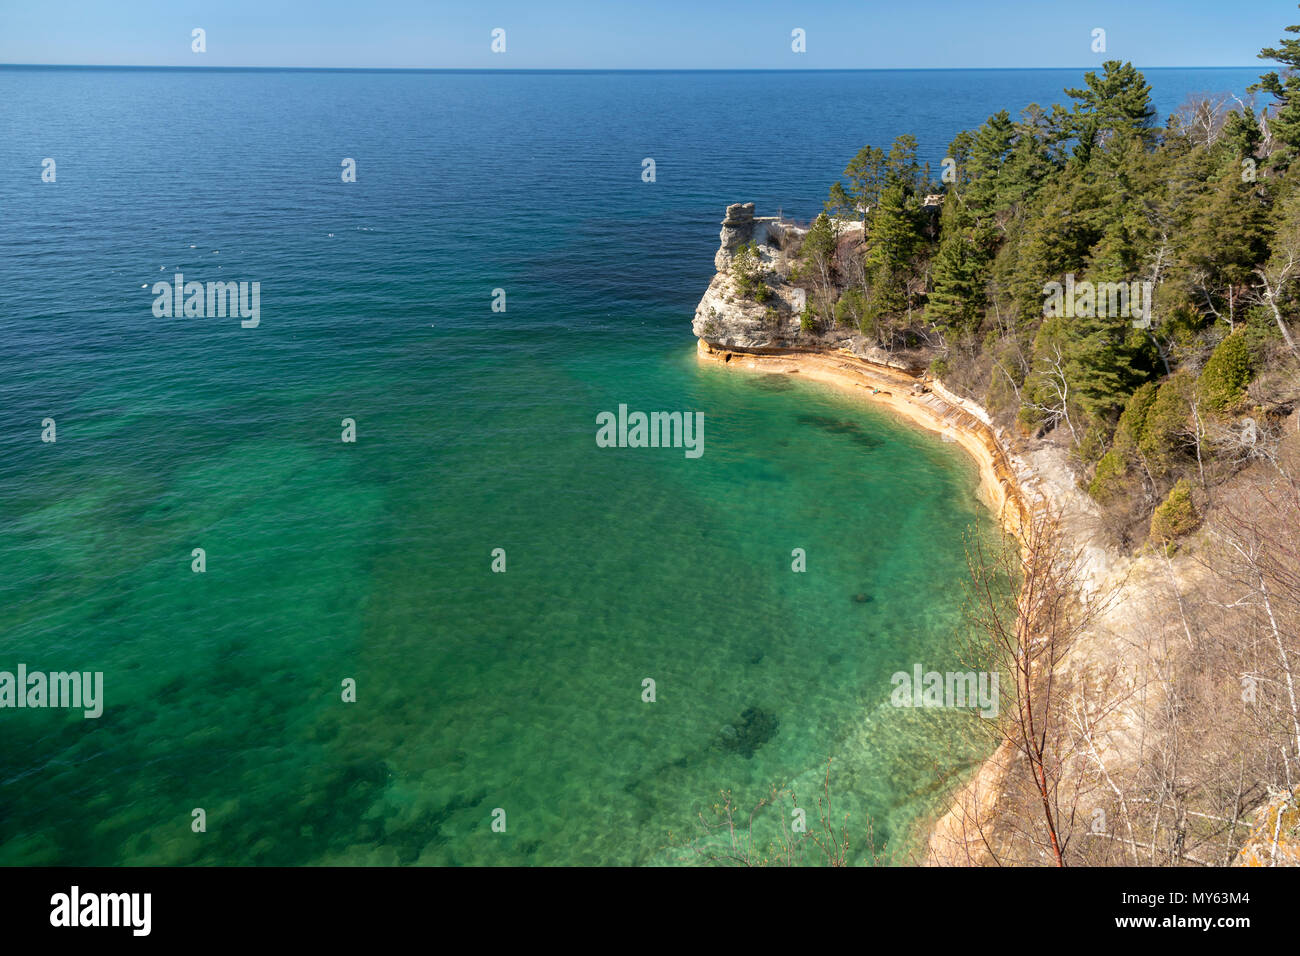 Munising, Michigan - Miners Castle on Lake Superior at Pictured Rocks National Lakeshore. - Stock Image